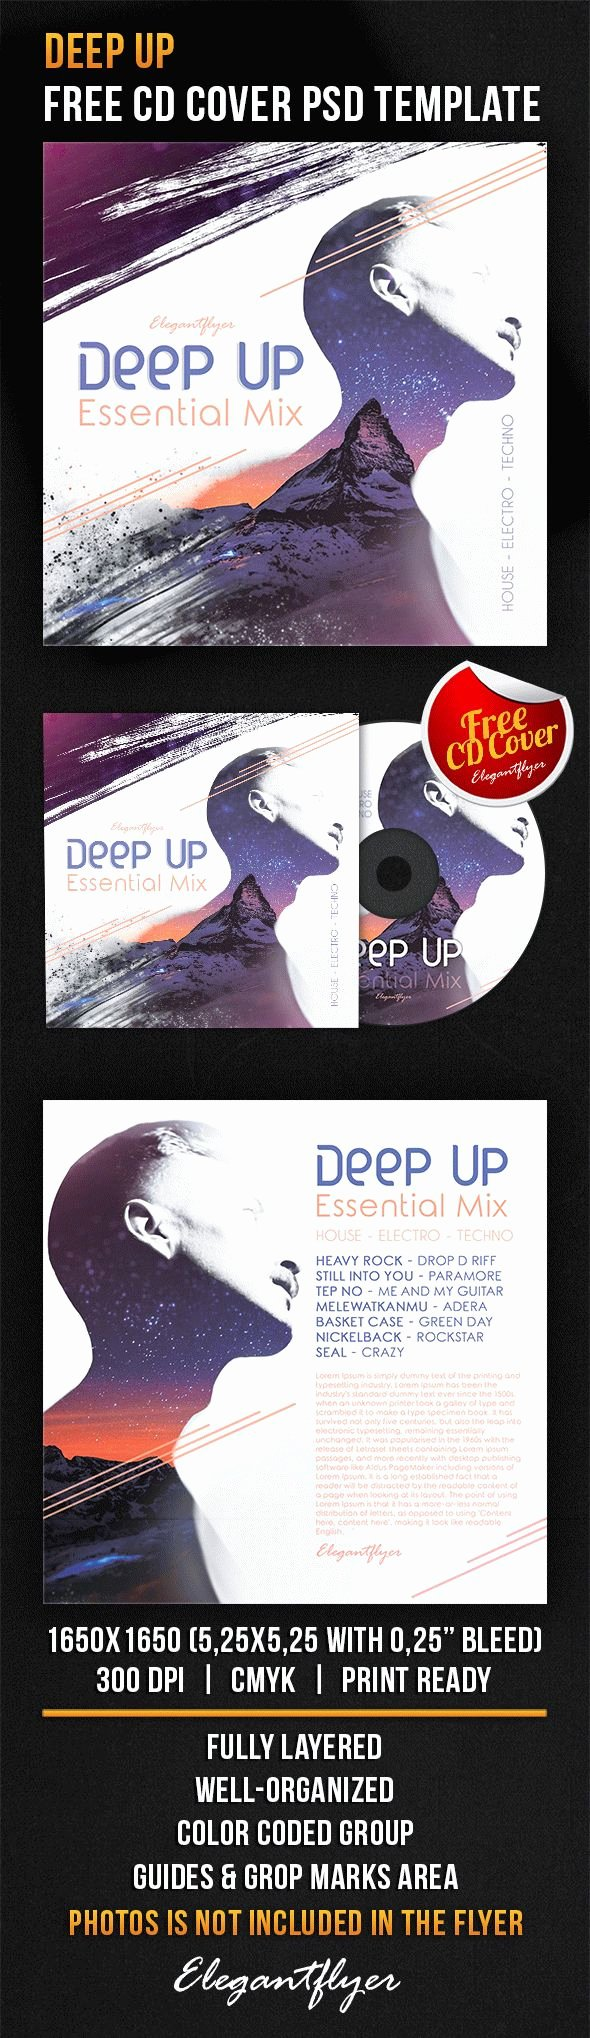 Cd Cover Template Psd Best Of Deep Up – Free Cd Cover Psd Template – by Elegantflyer